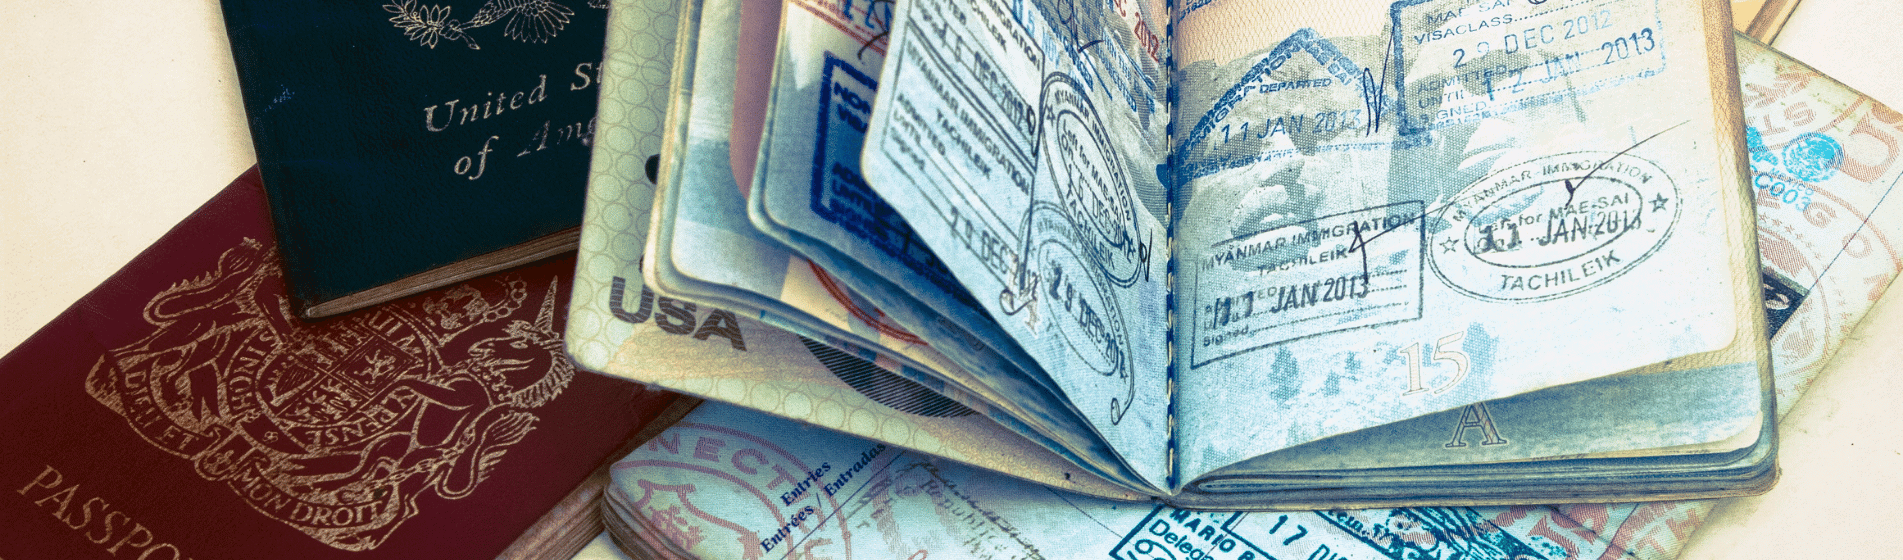 What Is the Best Passport in the World? The 3 Tiers of Passports